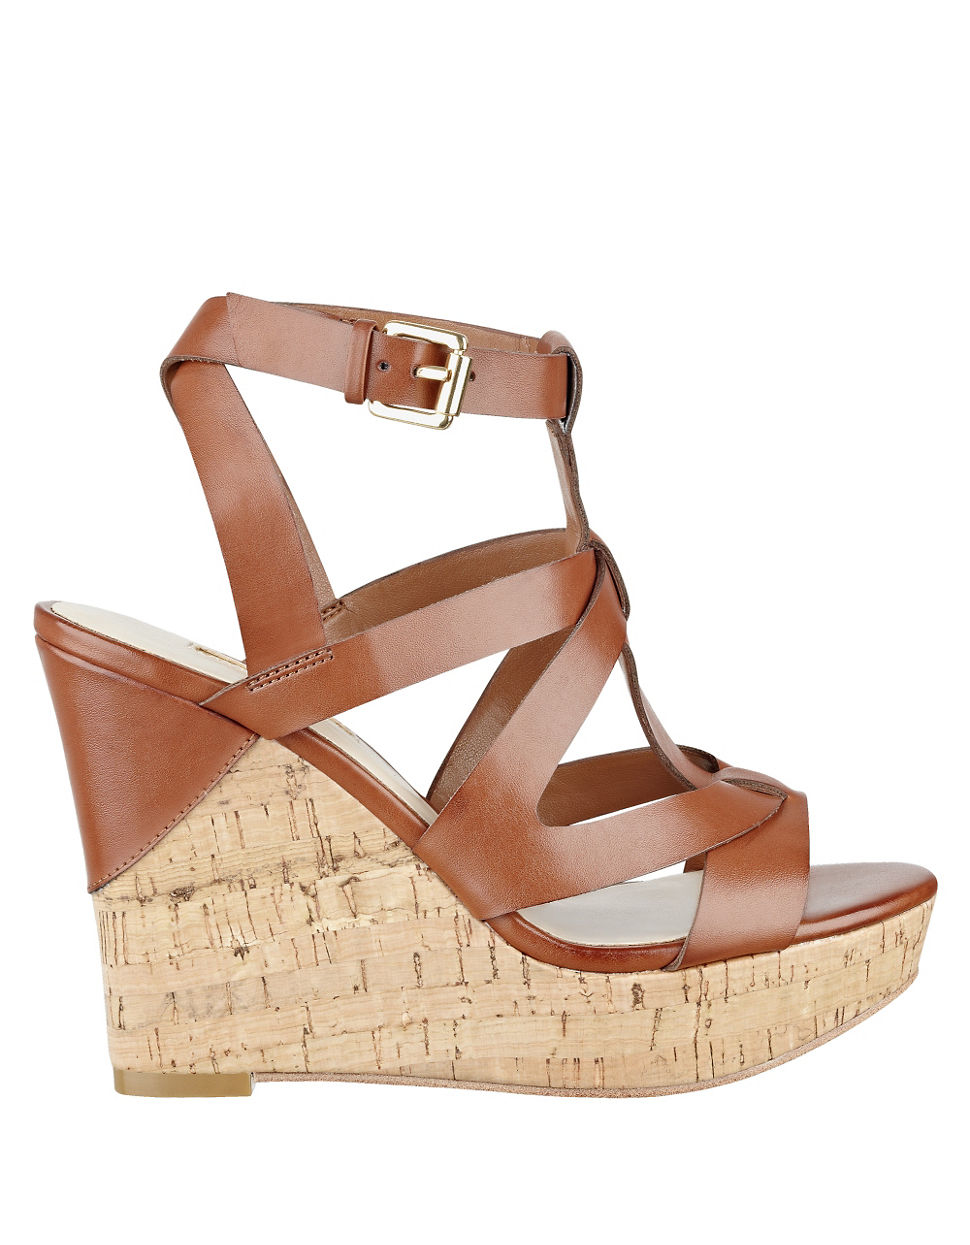 9b9c36da87 Guess Harlea Platform Wedge Sandals in Brown - Lyst